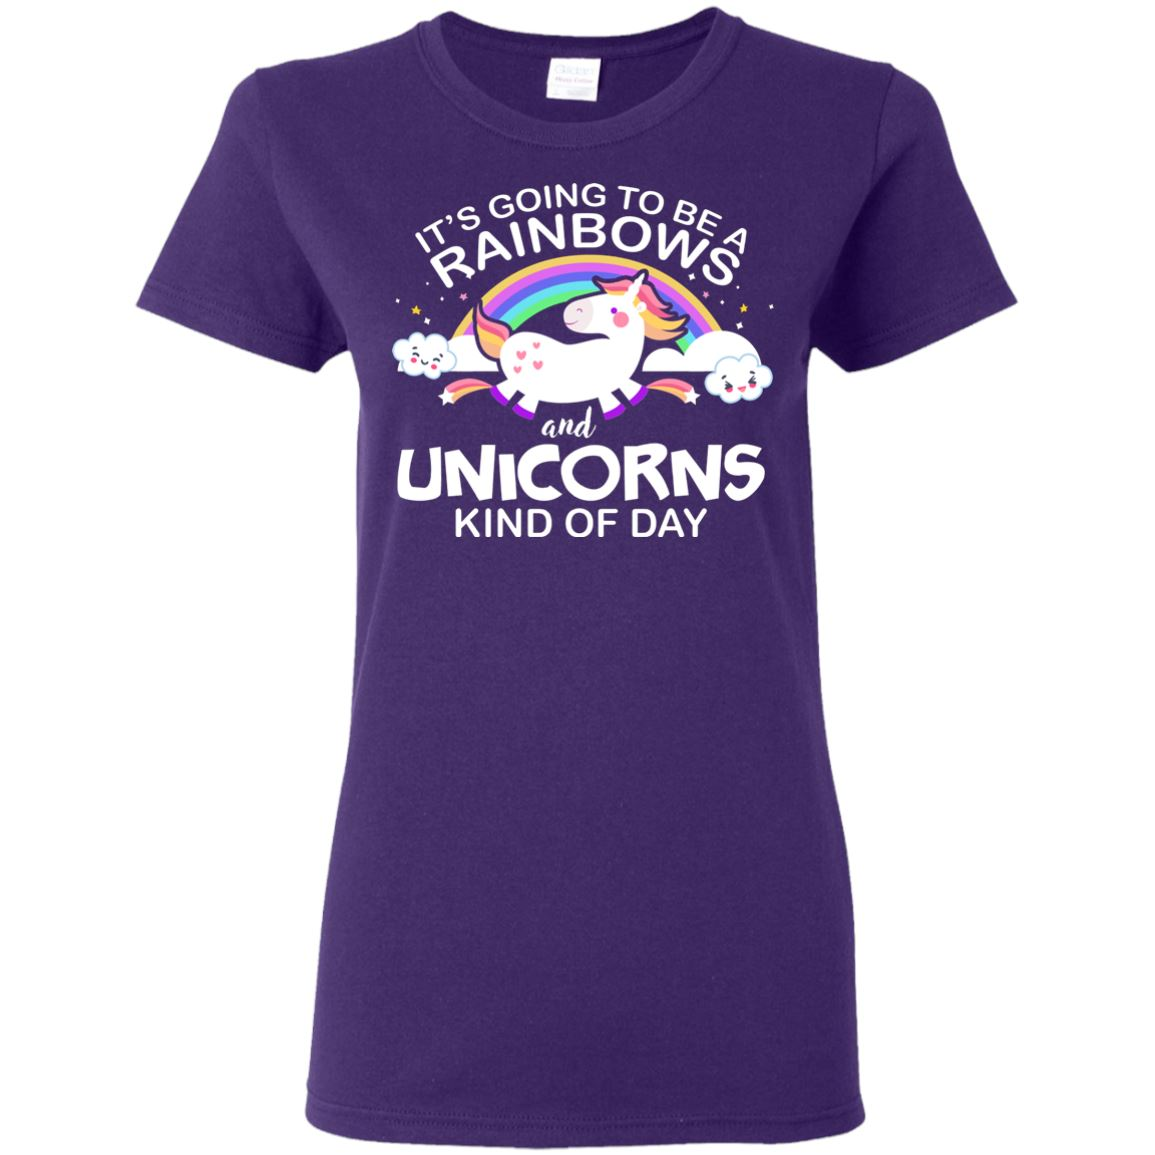 Unicorn & Rainbow Kind of Day Women's T-Shirt Apparel Purple S